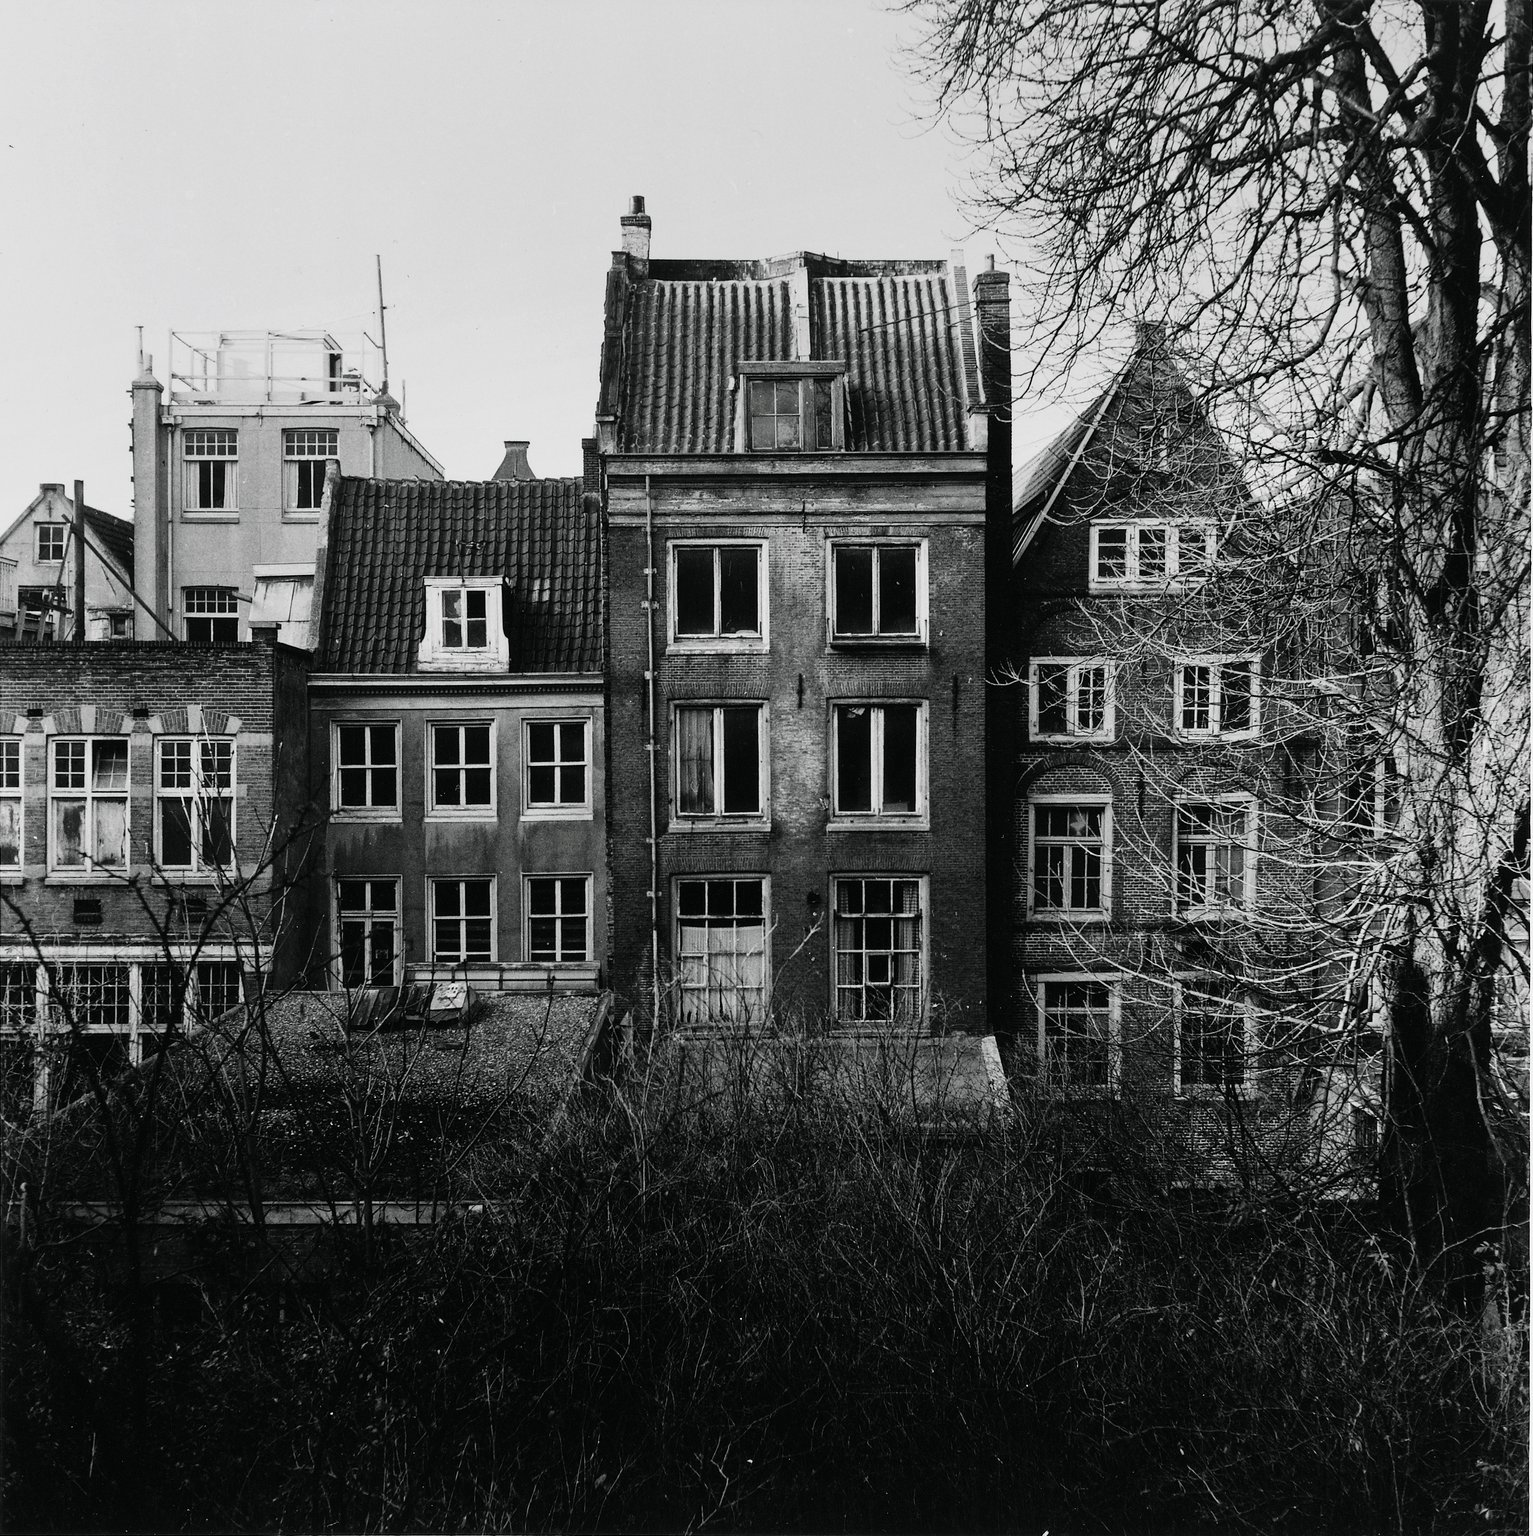 The annex on the Prinsengracht in Amsterdam in 1954. Anne Frank and the other people in hiding lived here for two years.